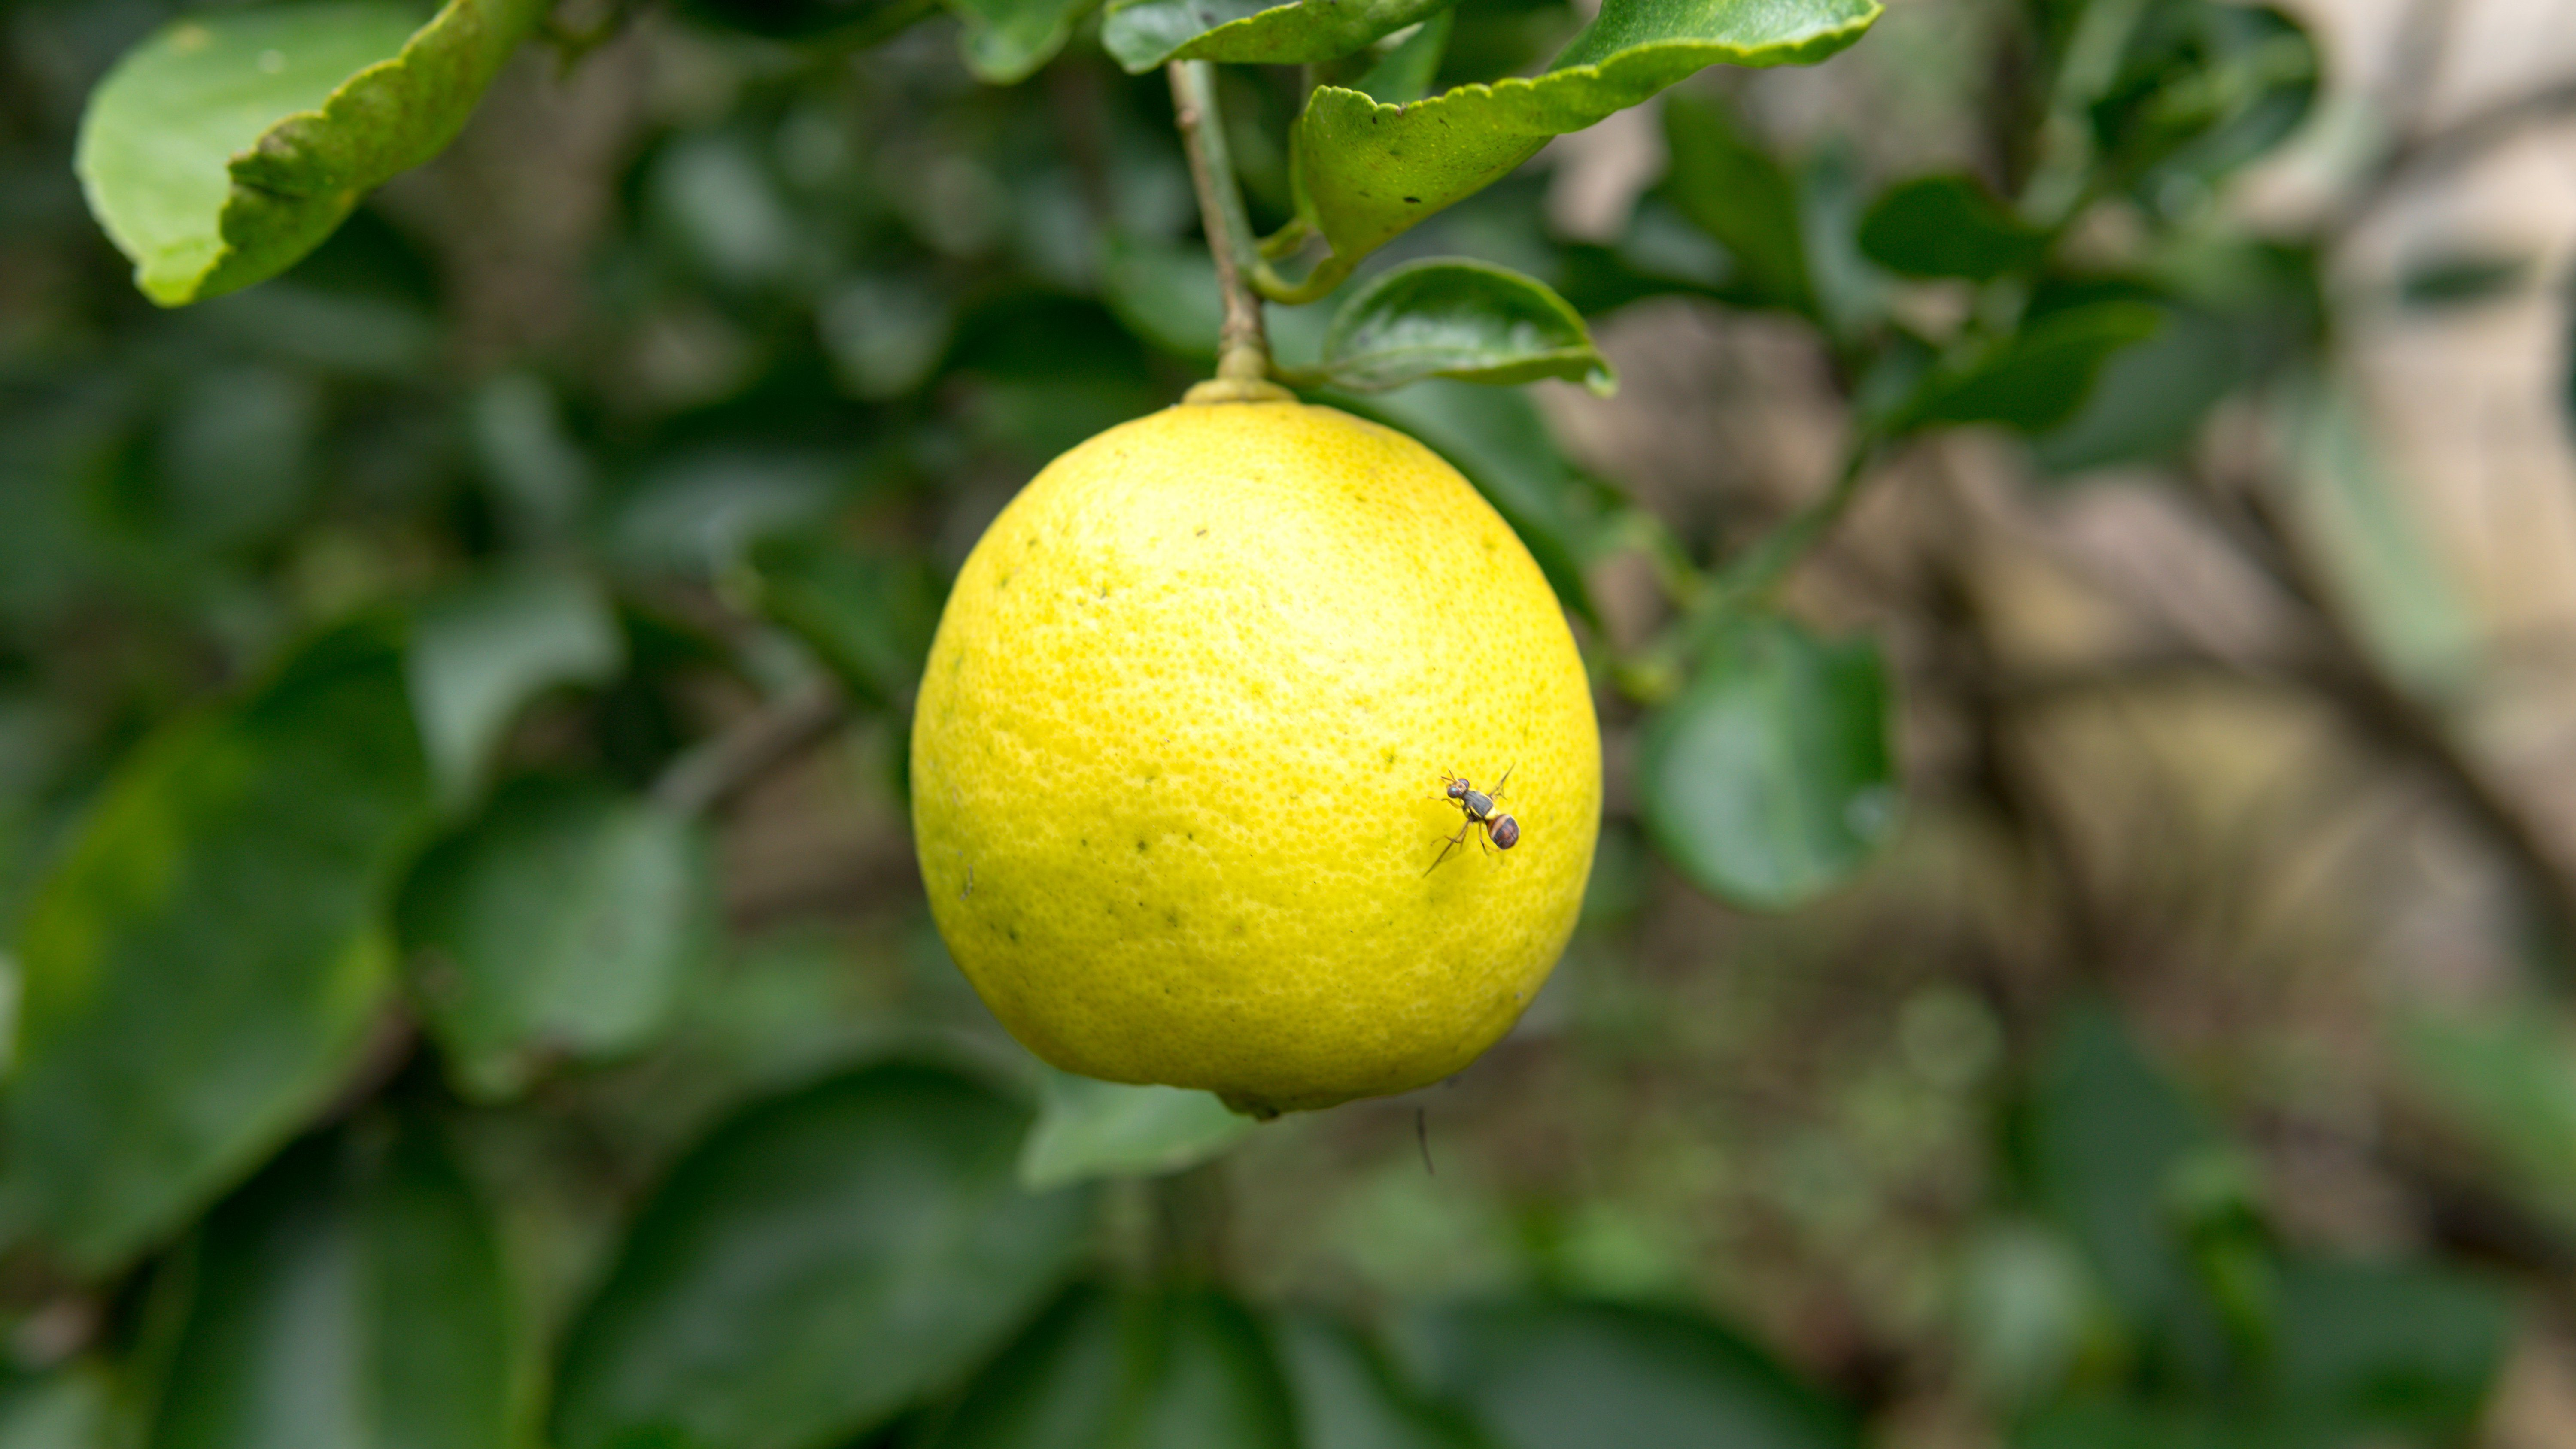 Bug on yellow lemon fruit , Lemon on the tree